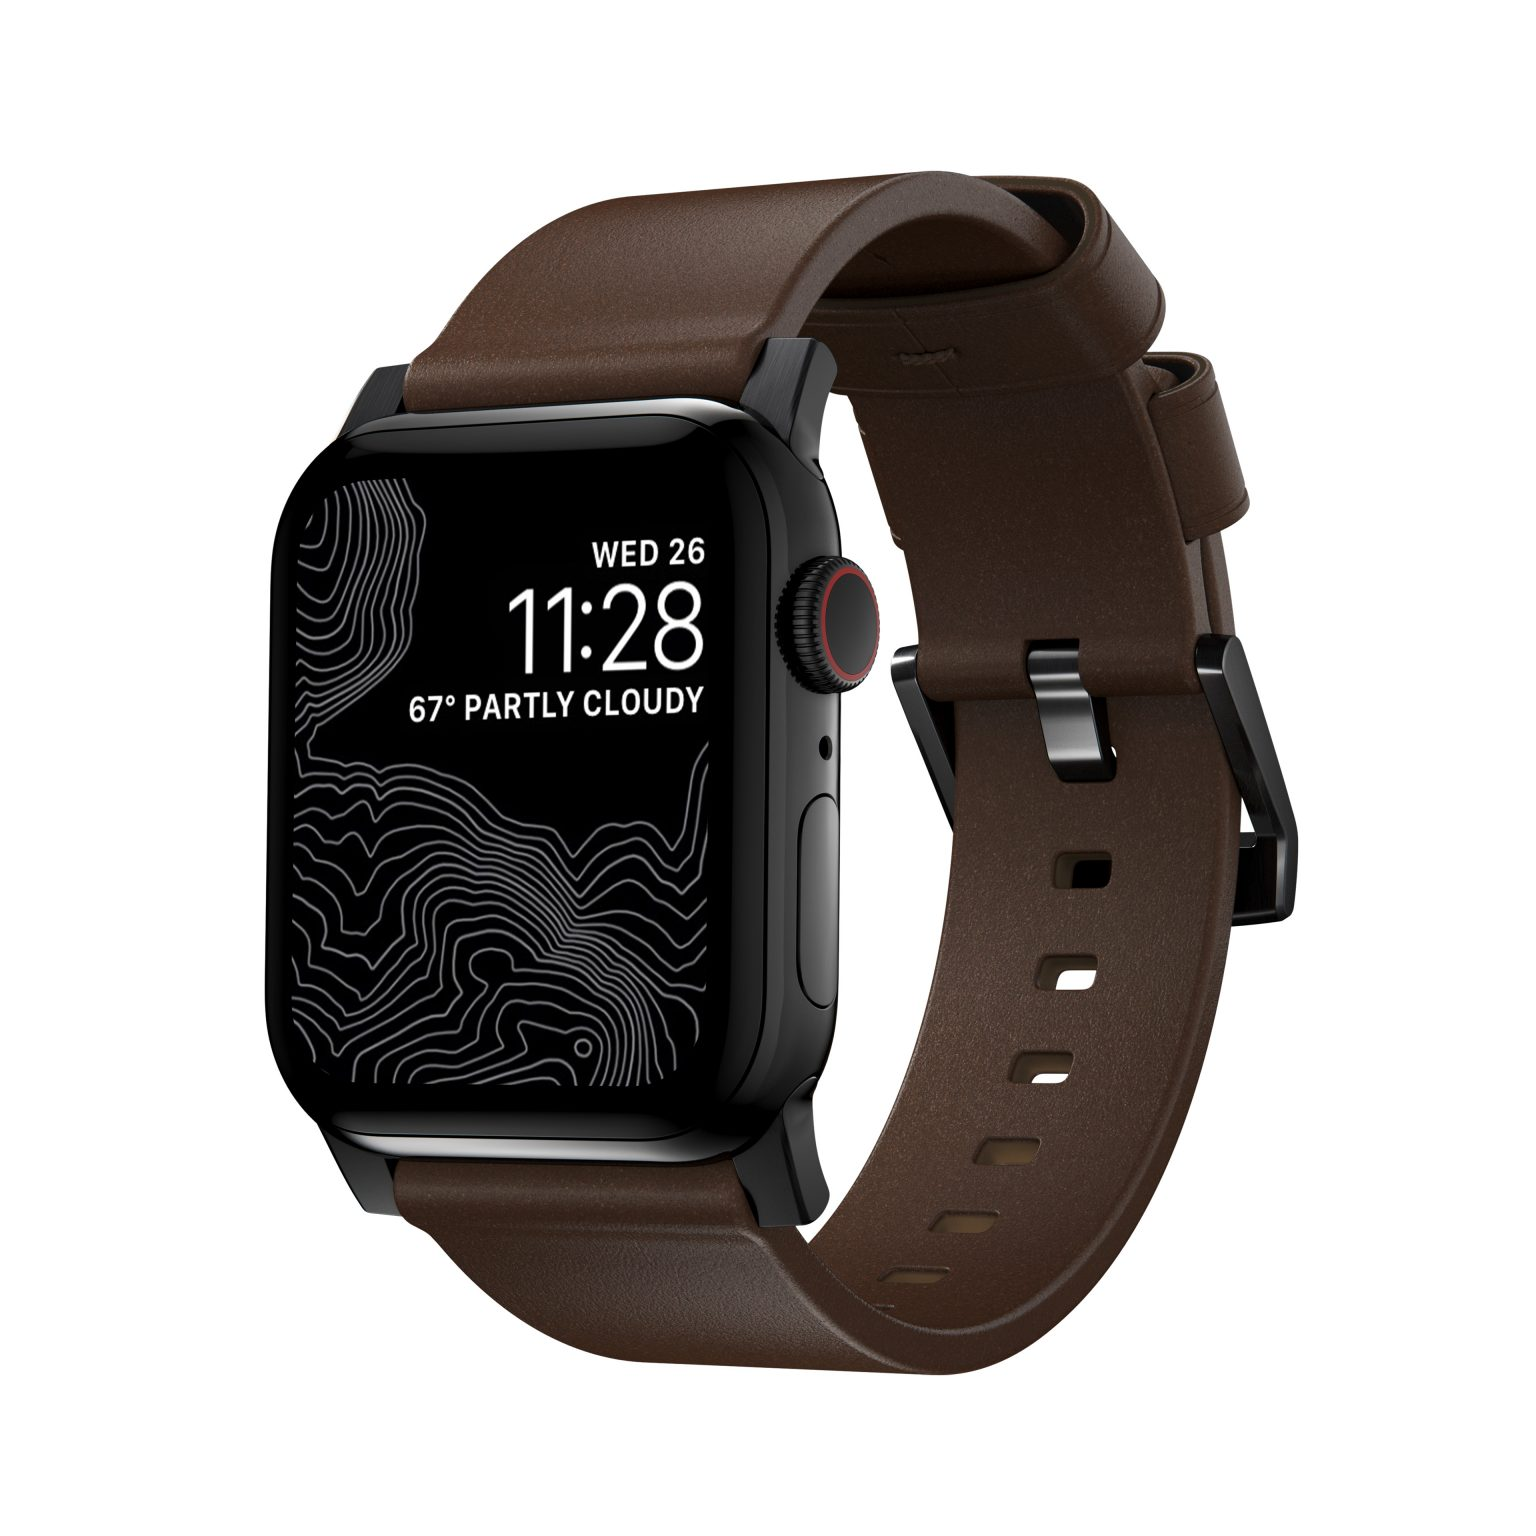 If you're getting rid of an old Apple Watch for any reason (Series 7!), you should factory reset it.